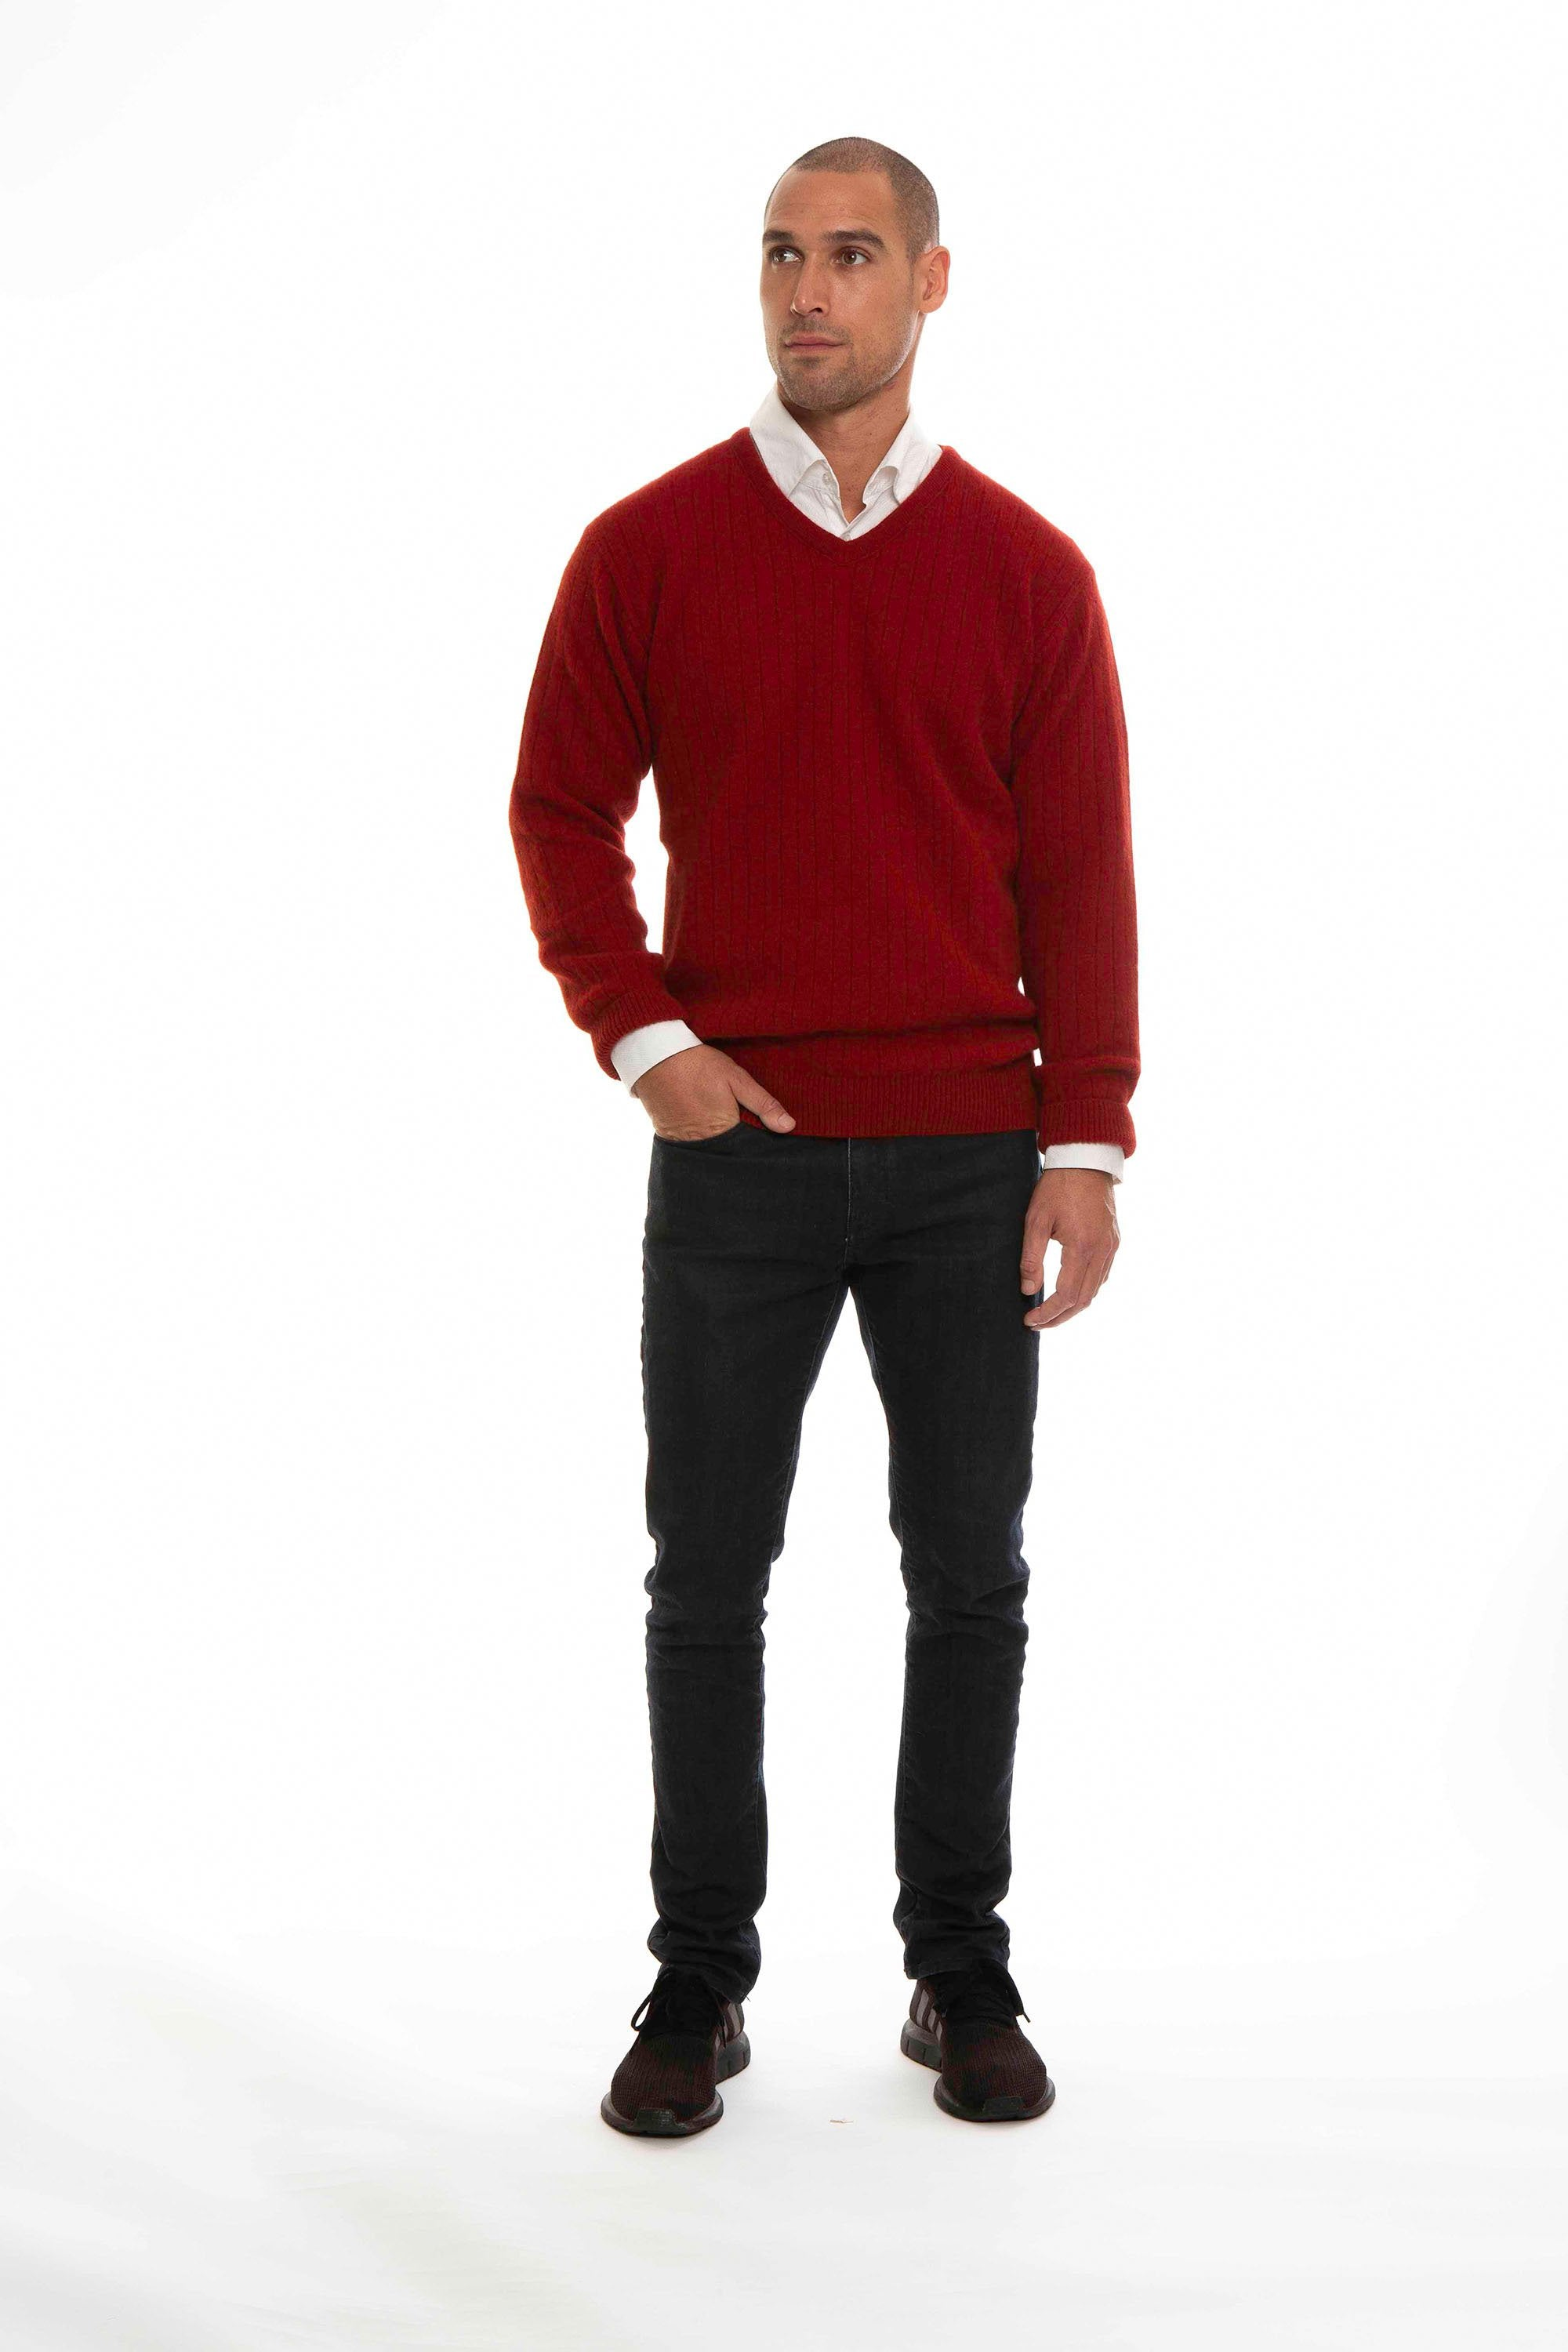 RIBBED V JUMPER - Woolshed Gallery